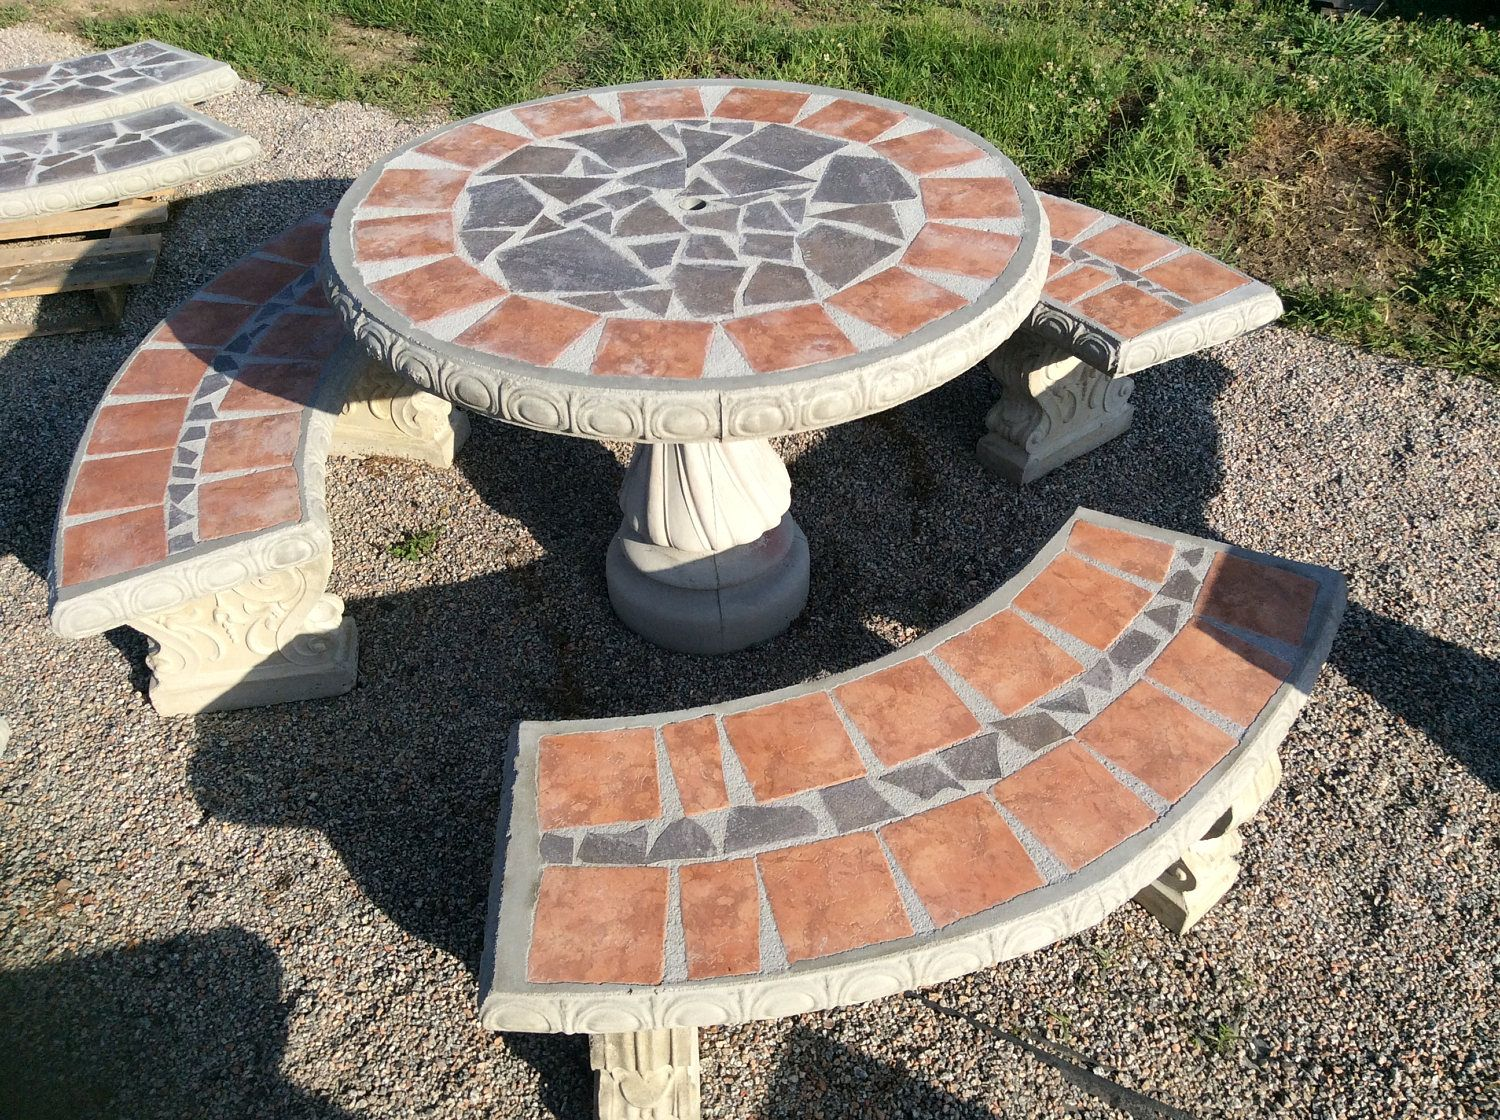 Patio Table Set Outdoor Tabe Round Concrete Tile Inlay Complete With 3 Benches By Cementbarn On Etsy